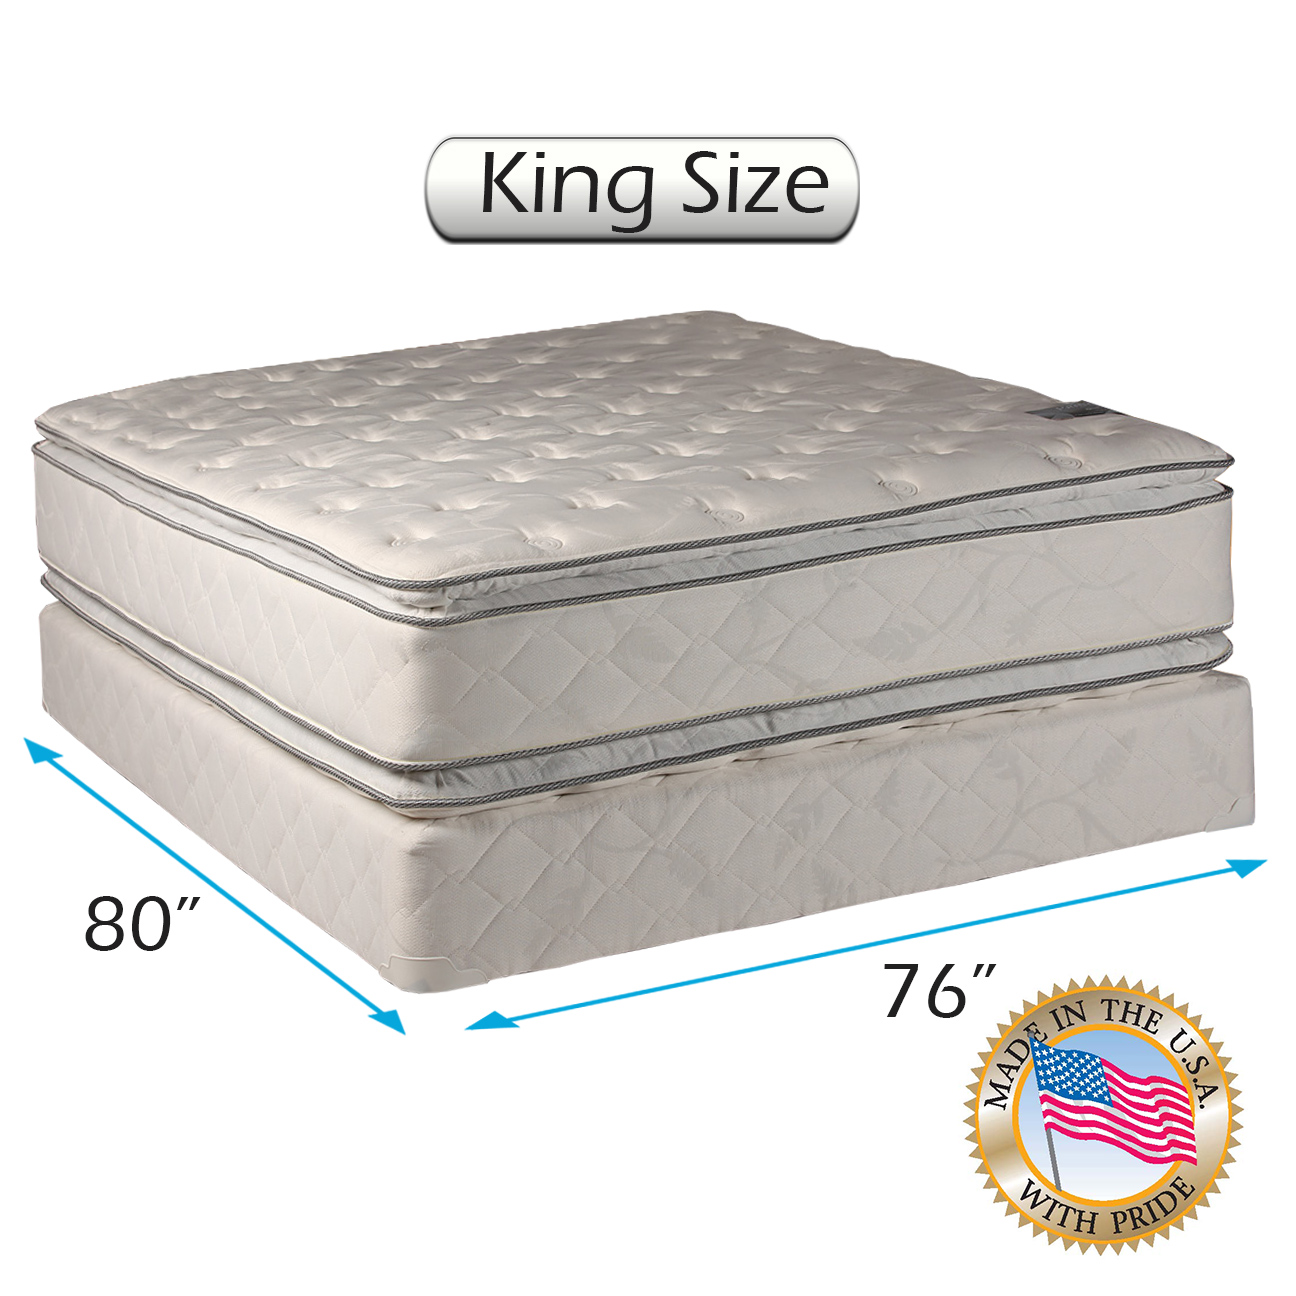 Serenity Pillow Top (King size) - Medium Soft Mattress Set Bed Frame Included Double-Sided Sleep System with Enhanced Cushion Back Support- Fully Assembled, Longlasting by Dream Solutions USA